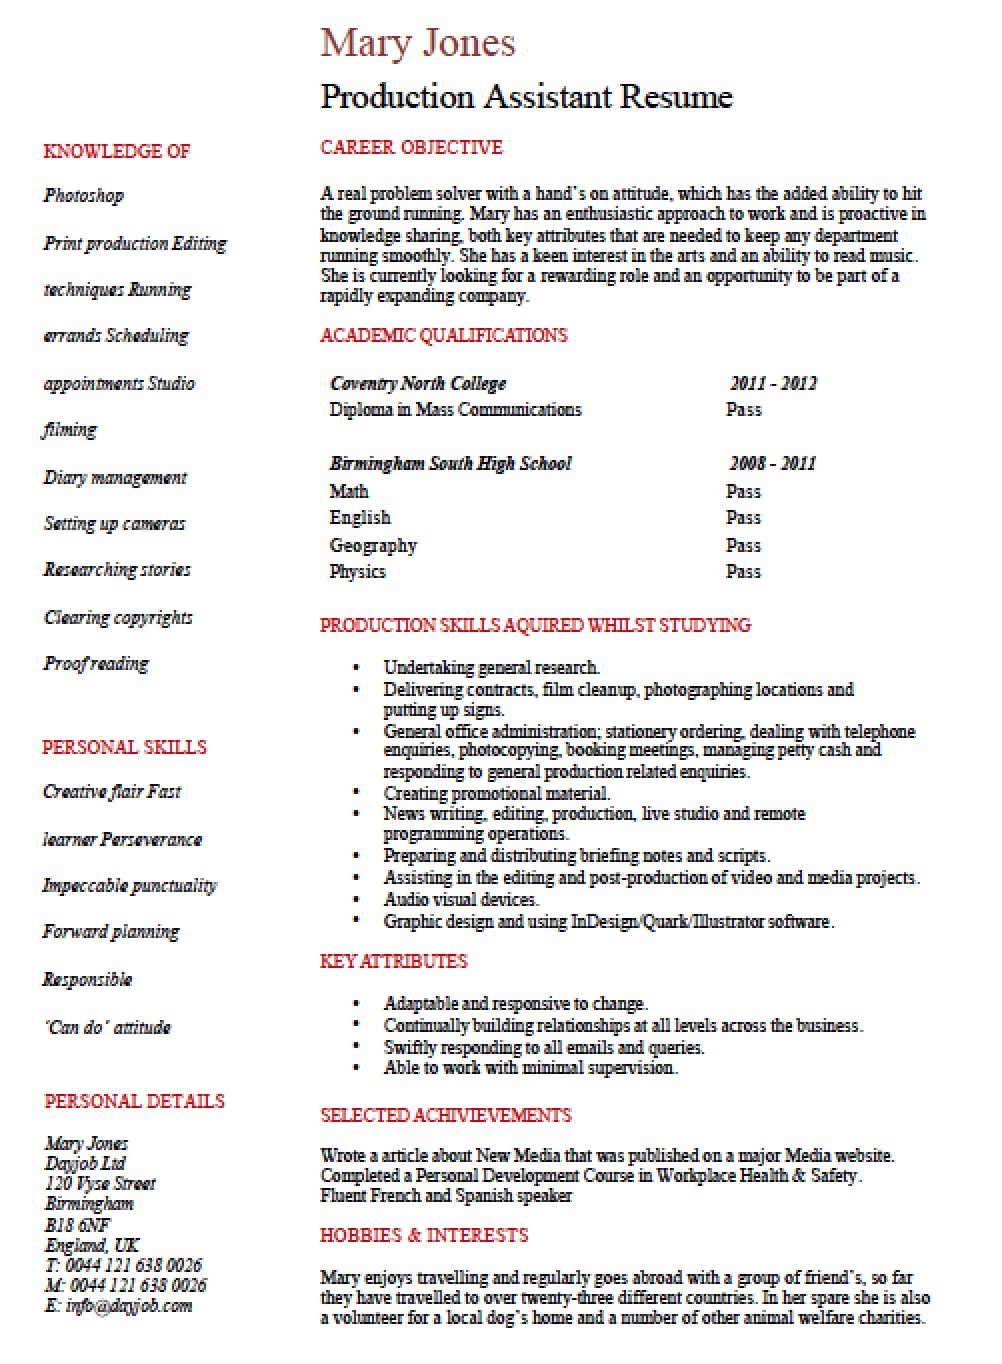 adobe pdf pdf rich text rtf microsoft word. Resume Example. Resume CV Cover Letter